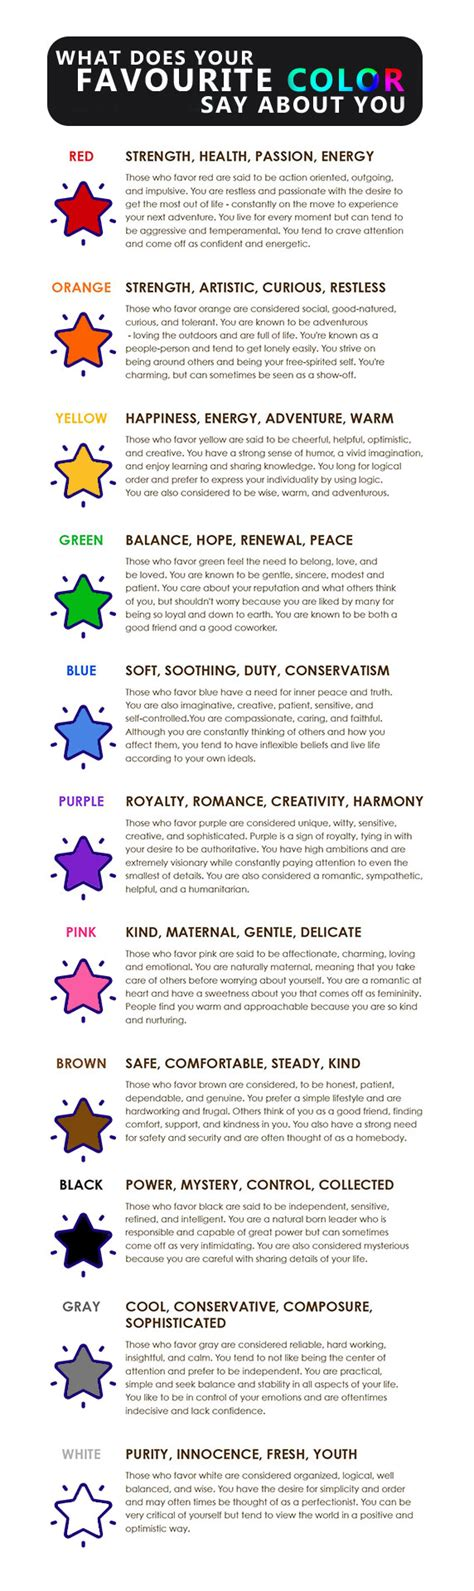 what your favorite color says about you what does your favorite color say about you 11